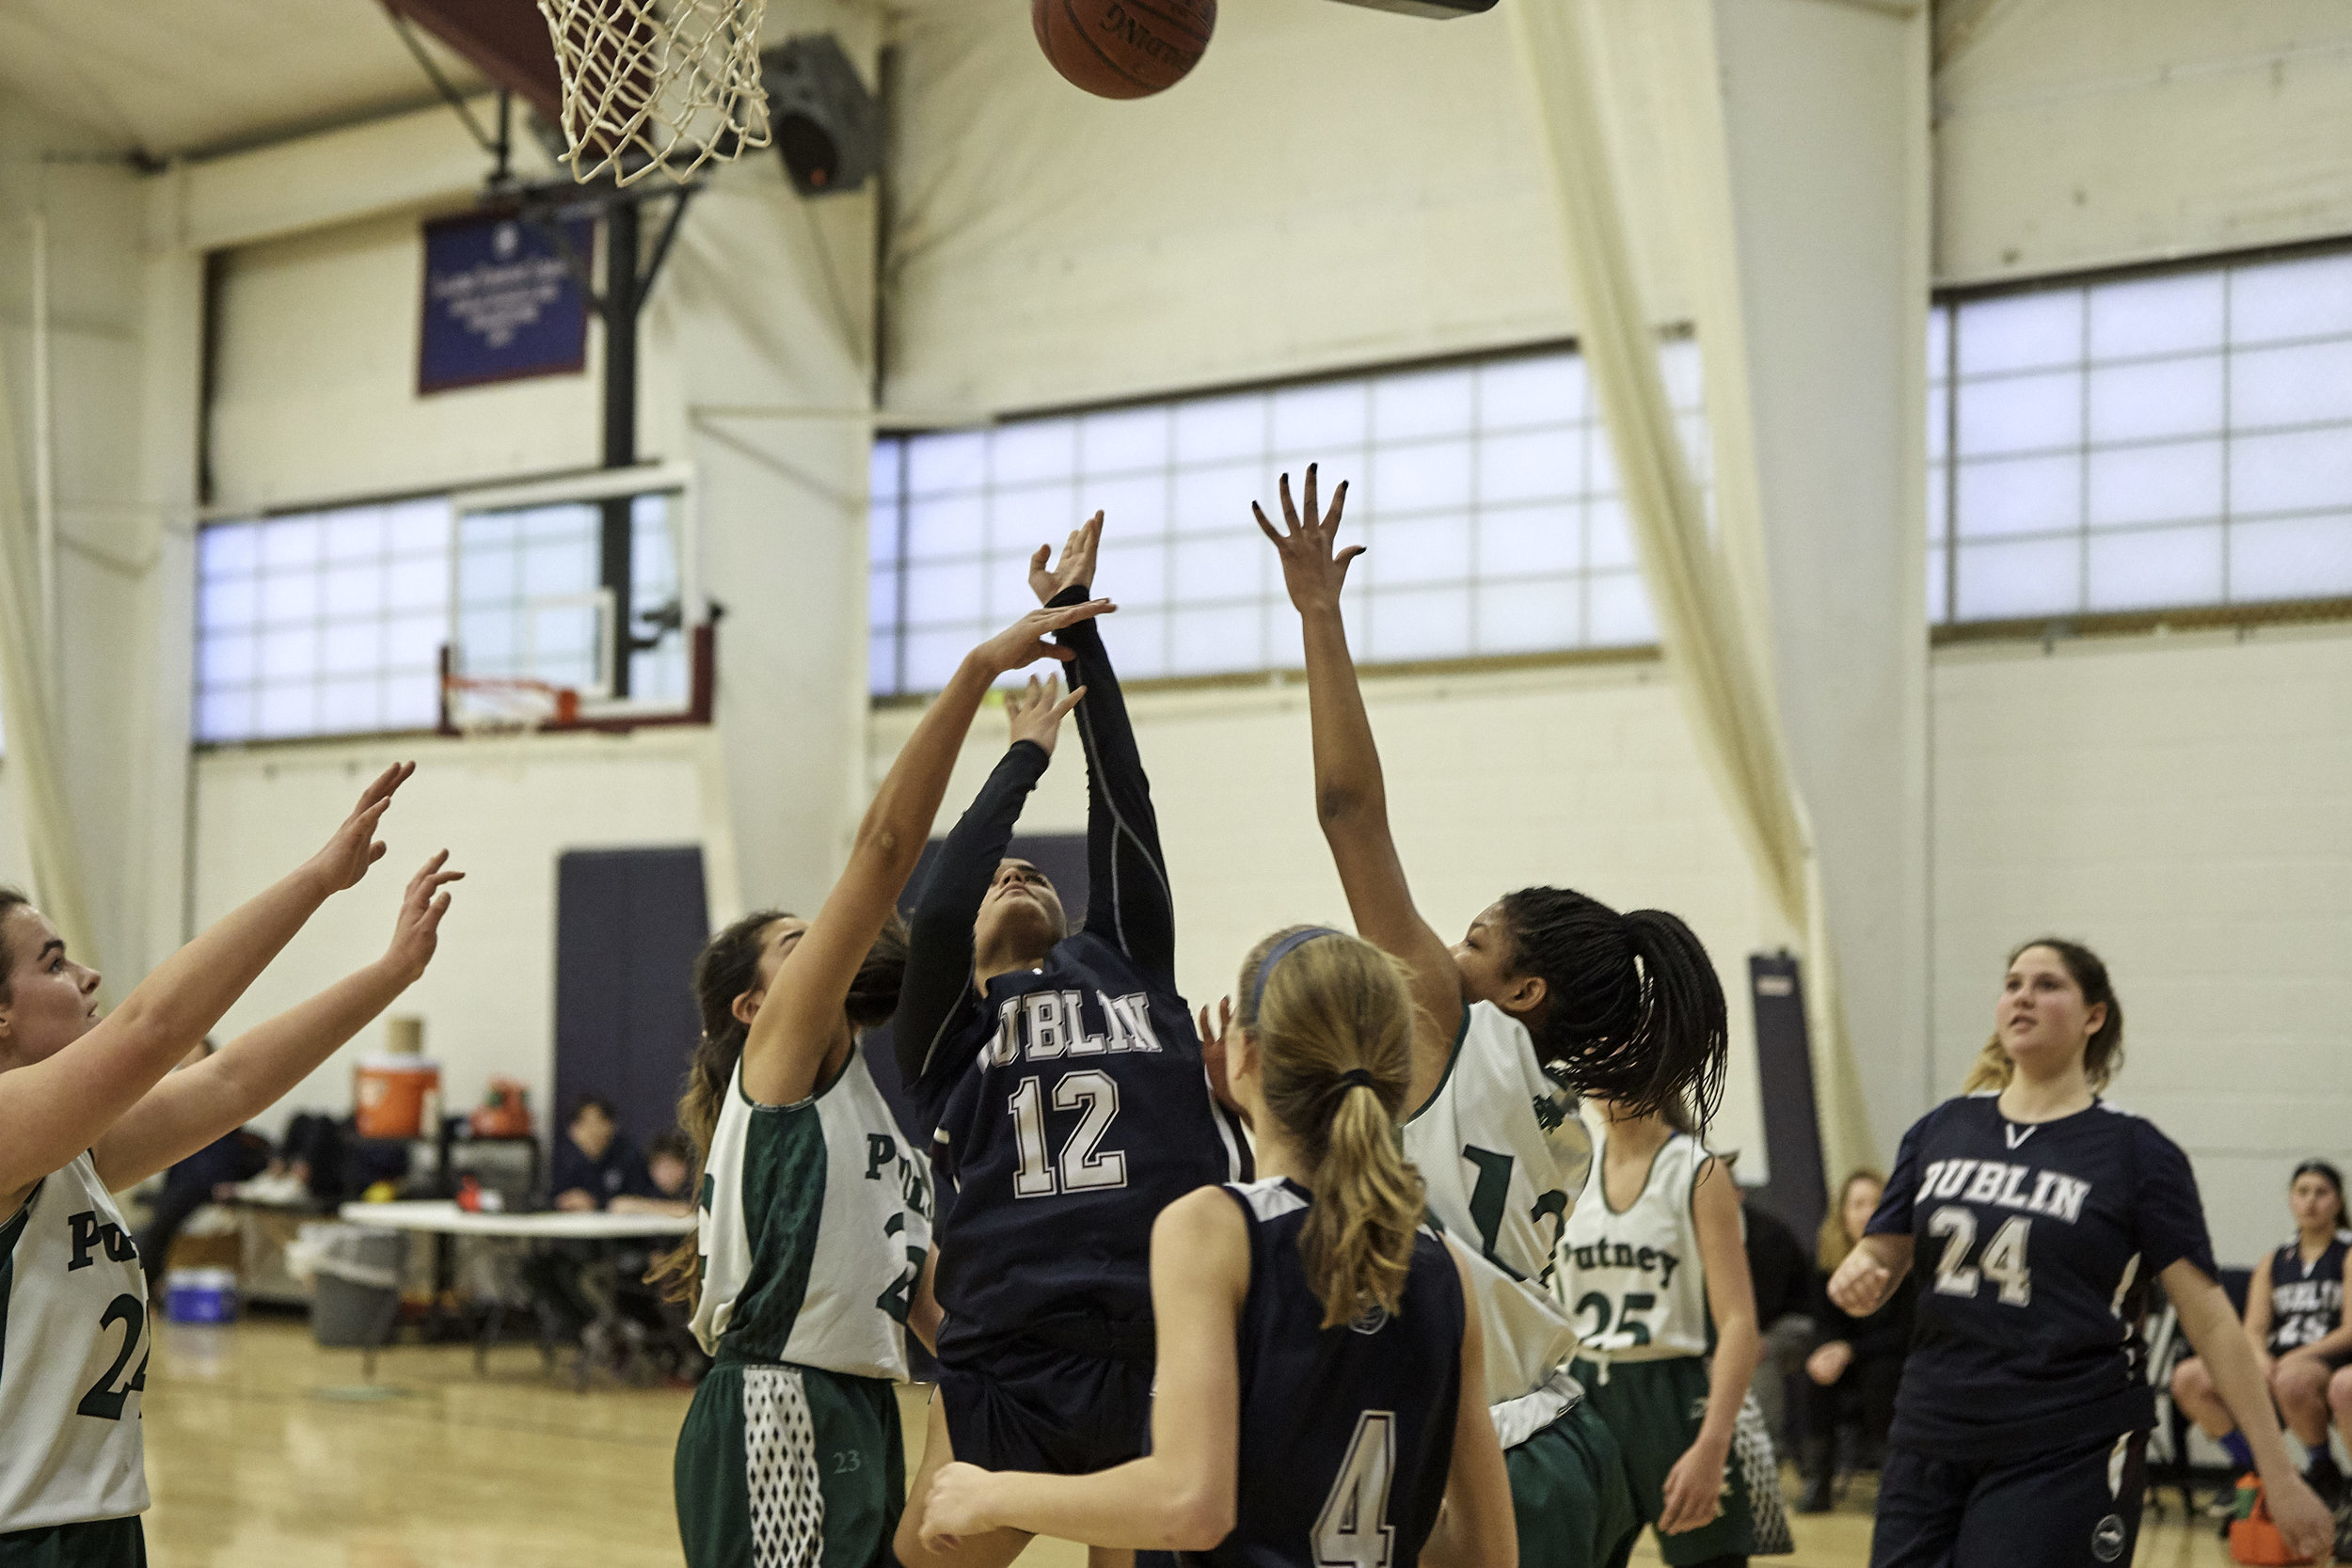 Basketball vs Putney School, February 9, 2019 - 167472.jpg